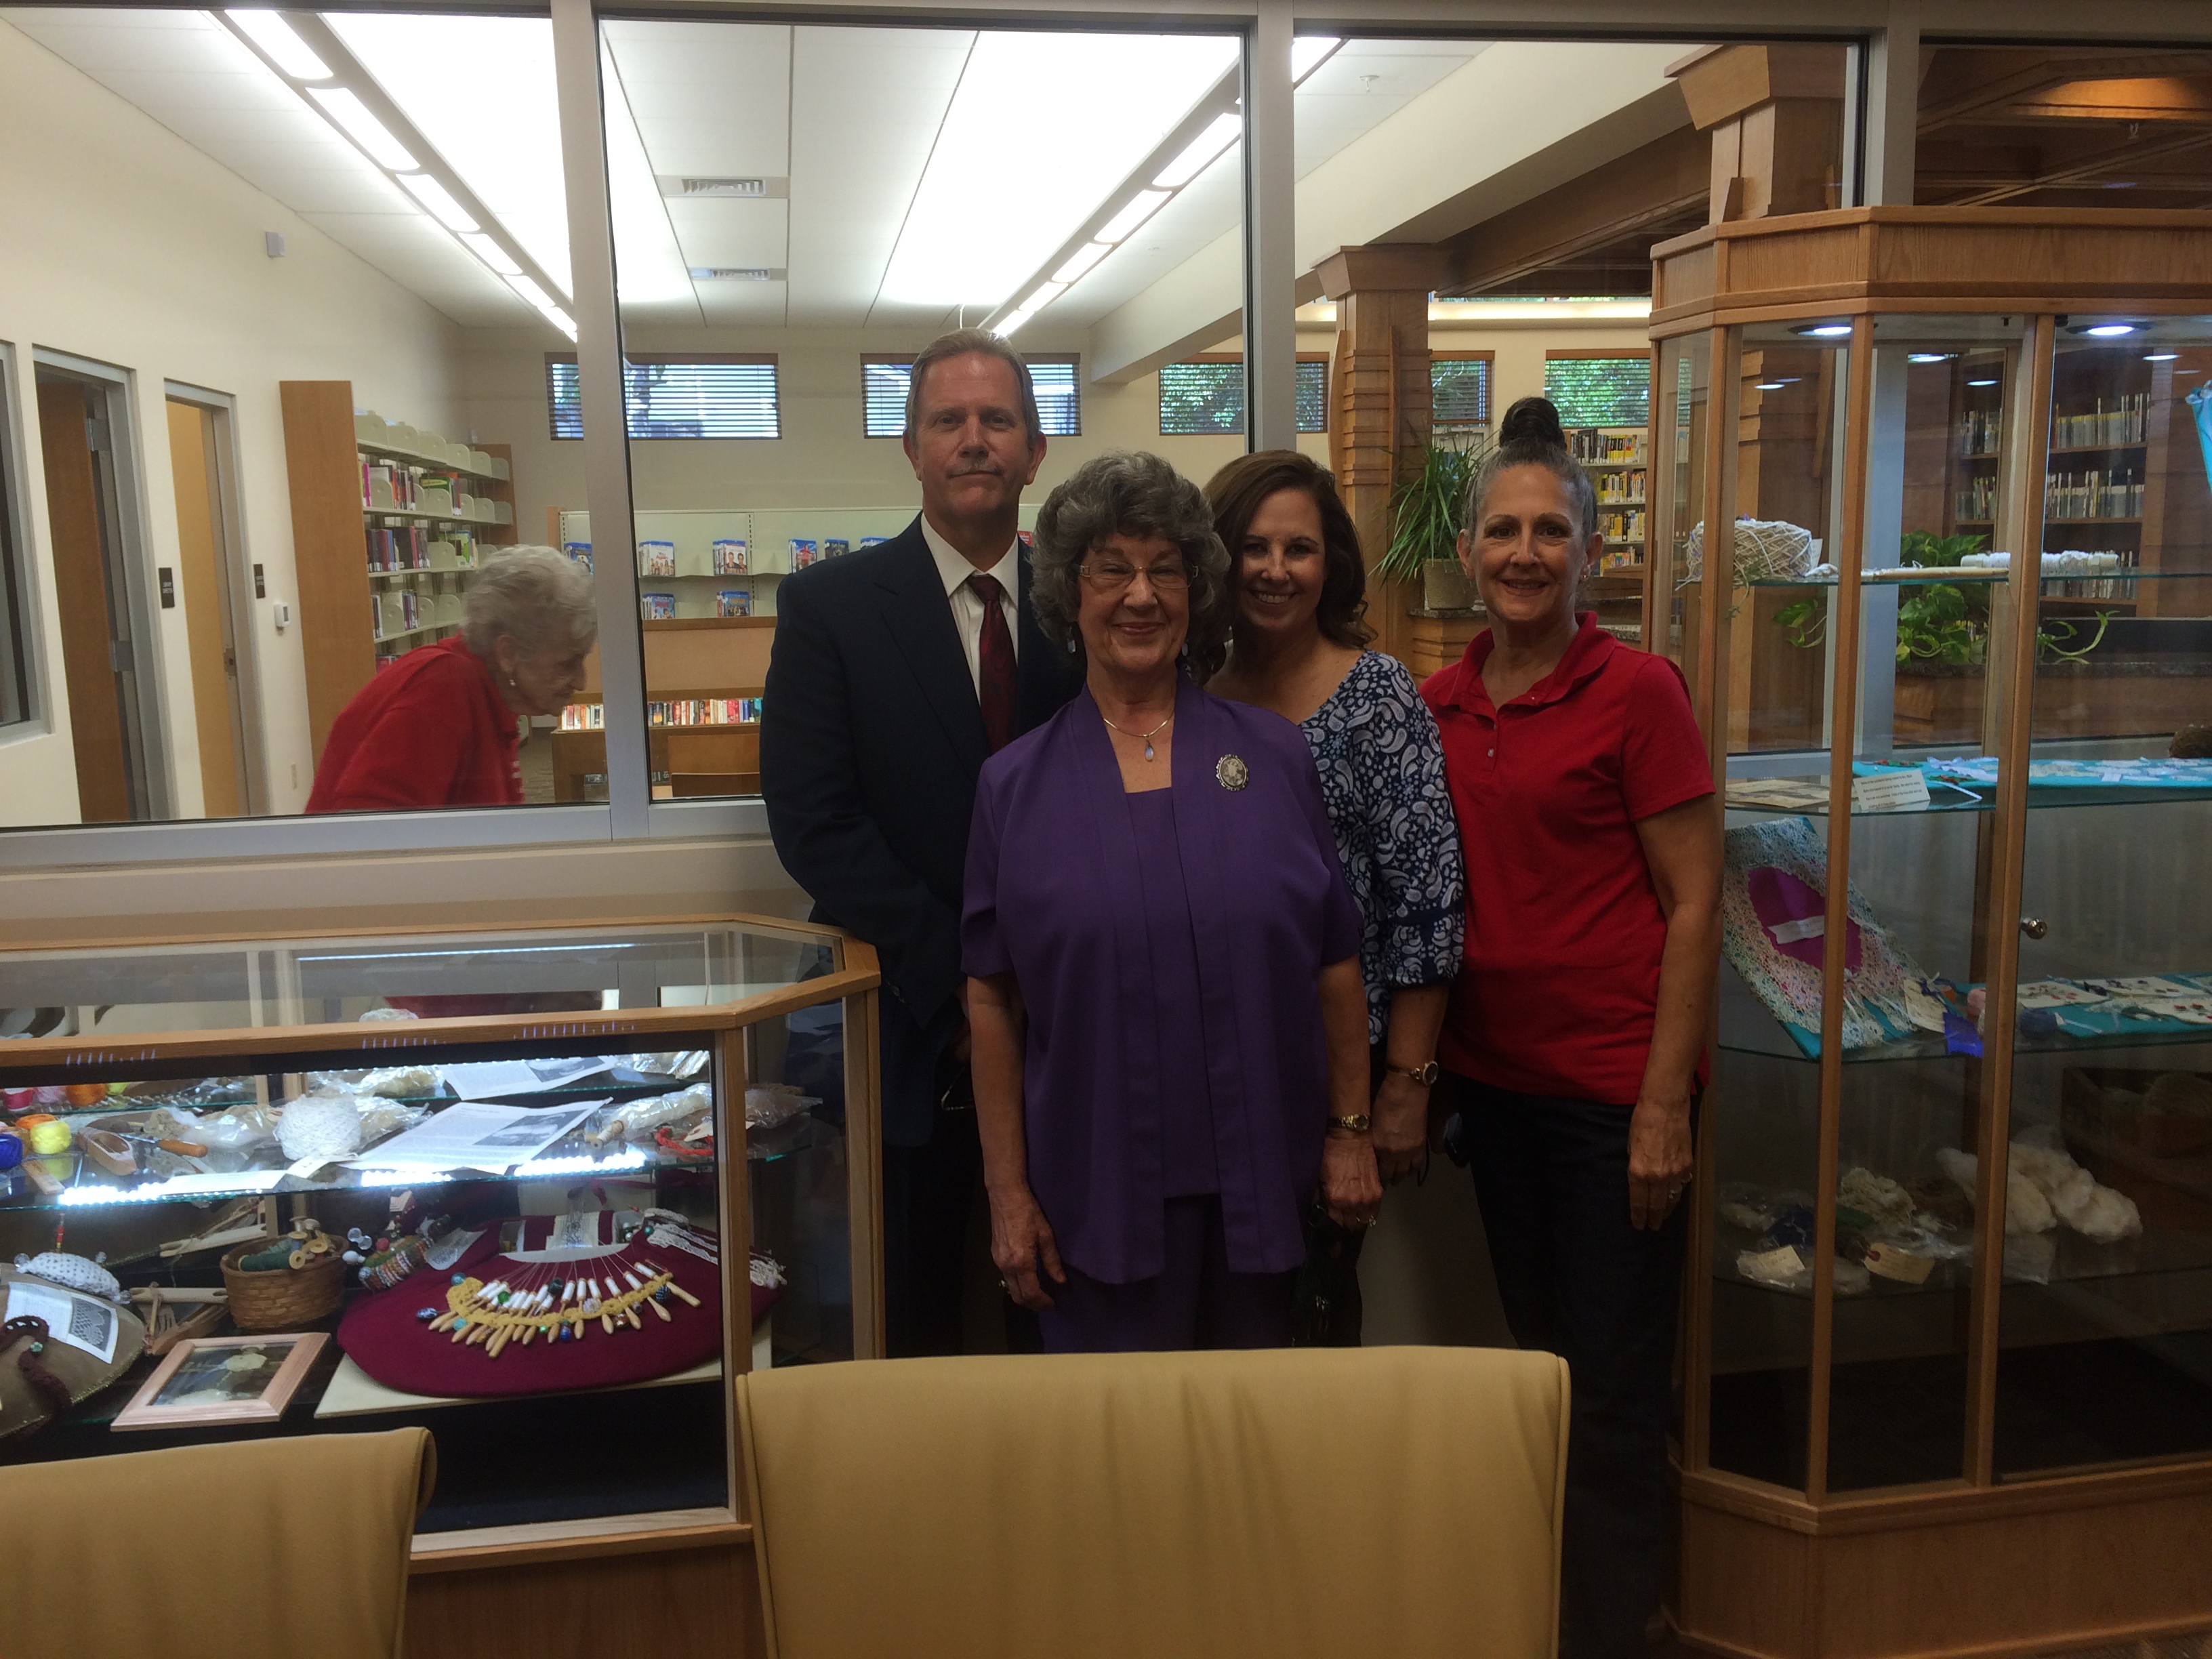 History Room Displays with Director Trey Lewis, Betty Comer and Carolyn Byles.